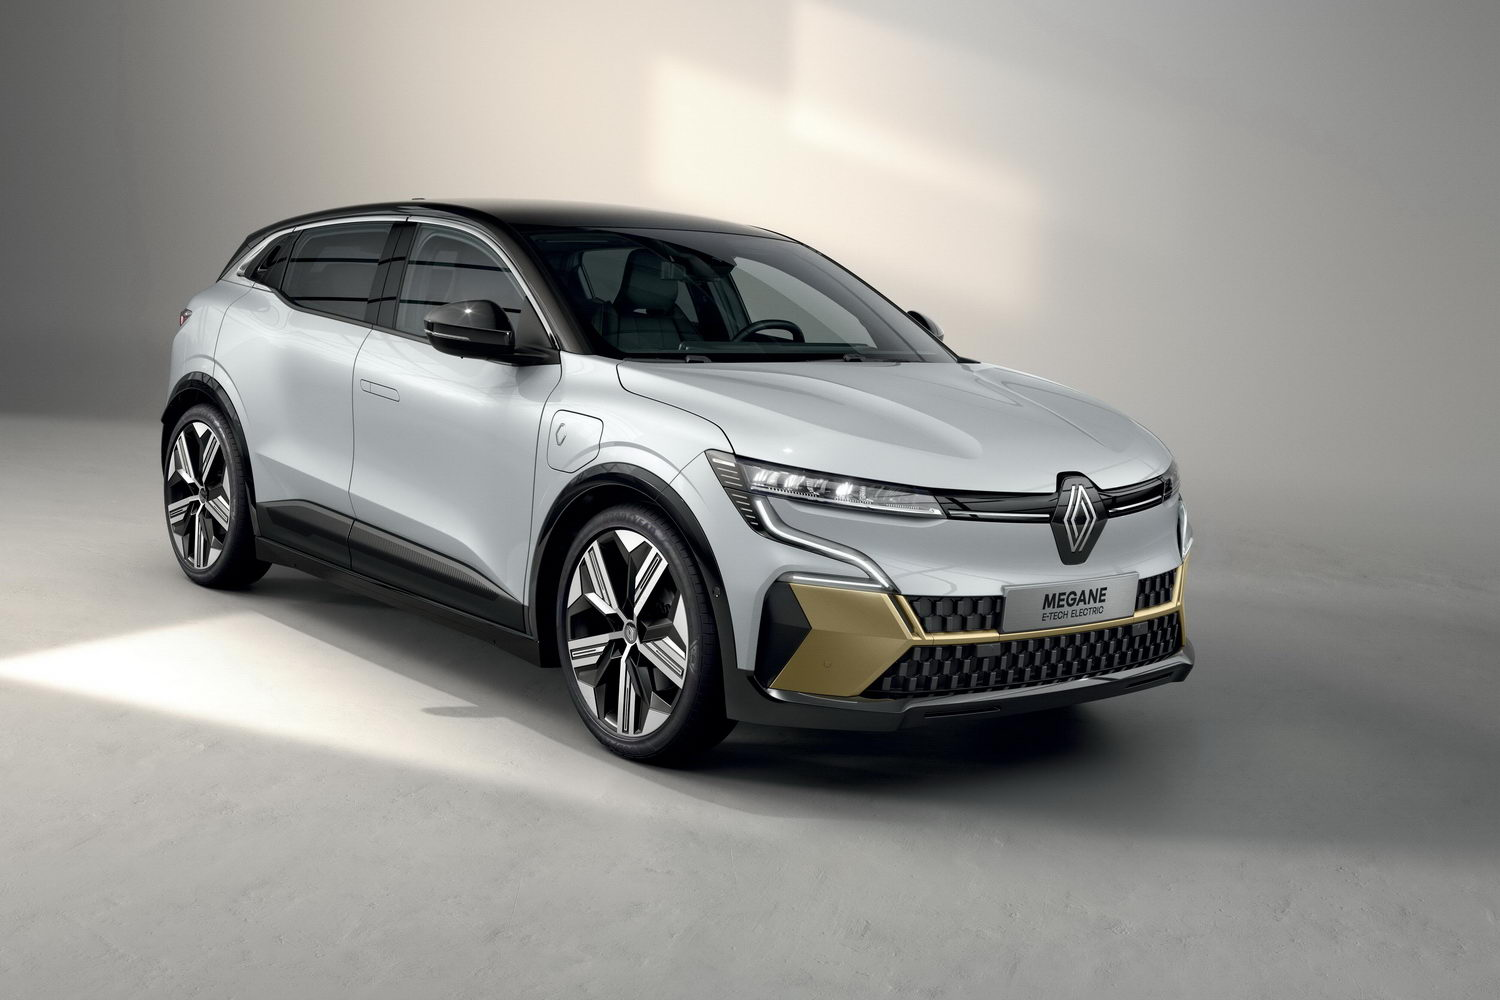 Car News | Renault reveals all-new Megane Electric for 2022 | CompleteCar.ie